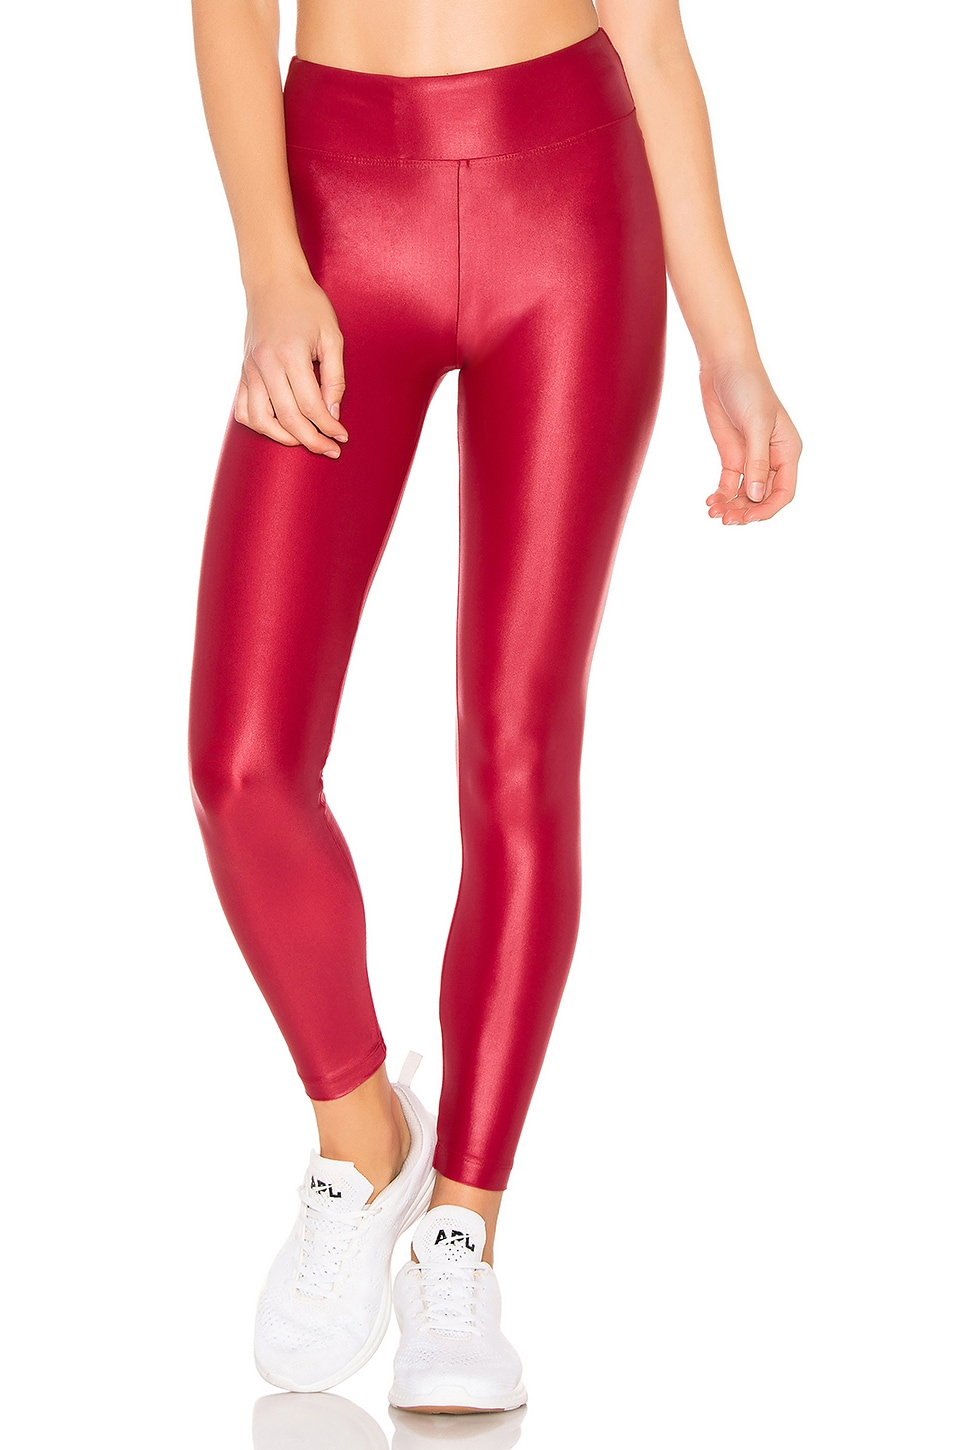 KORAL Lustrous High Rise Legging in Red